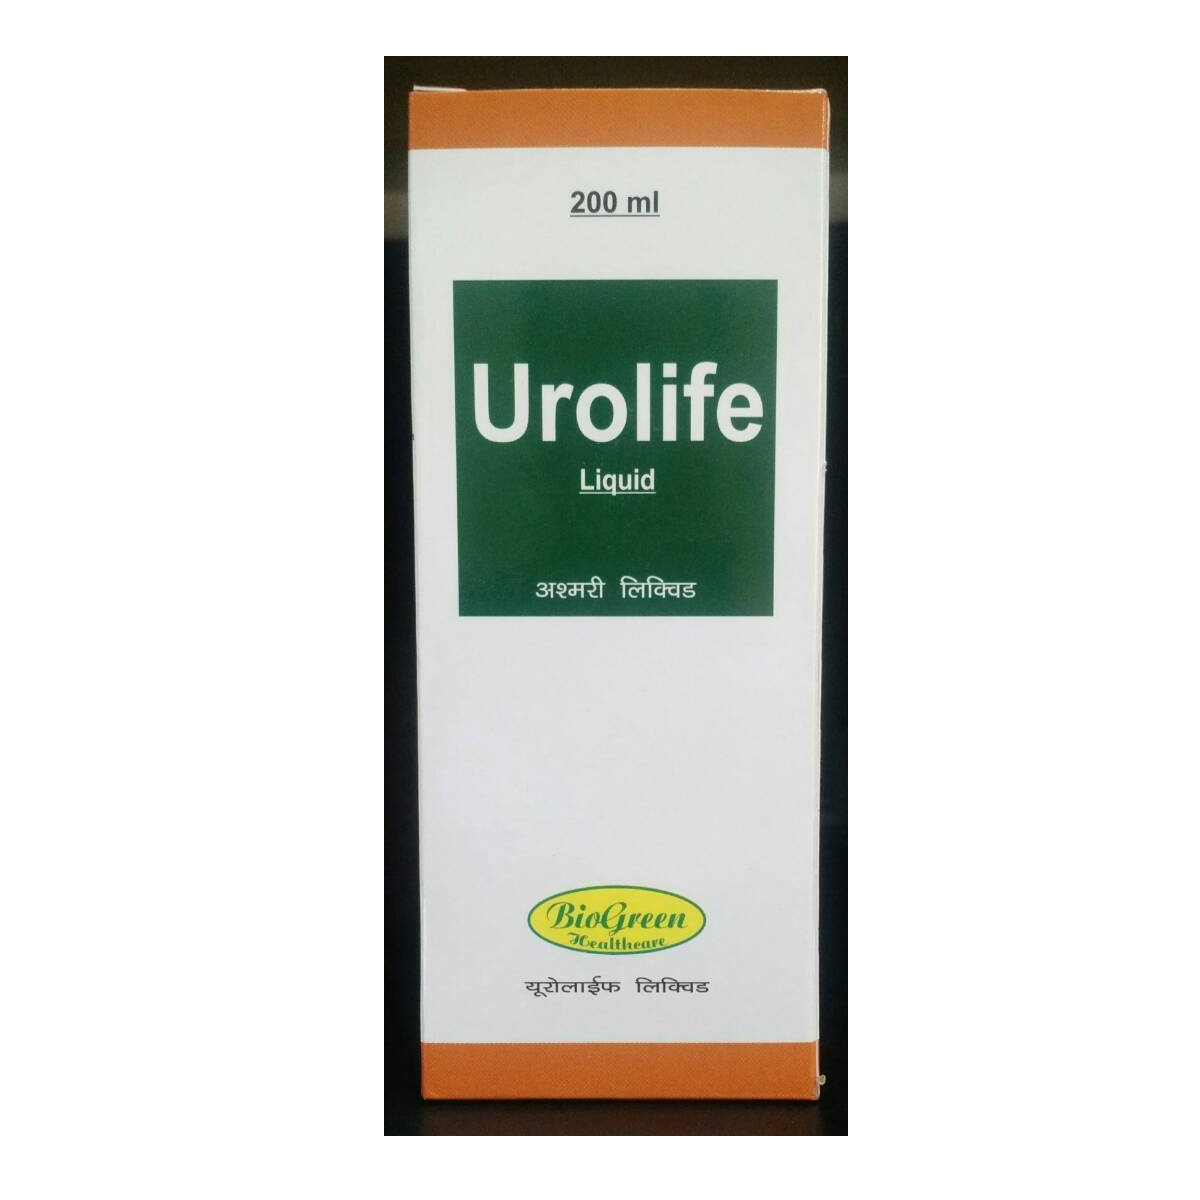 Urolife Liquid In Bijapur